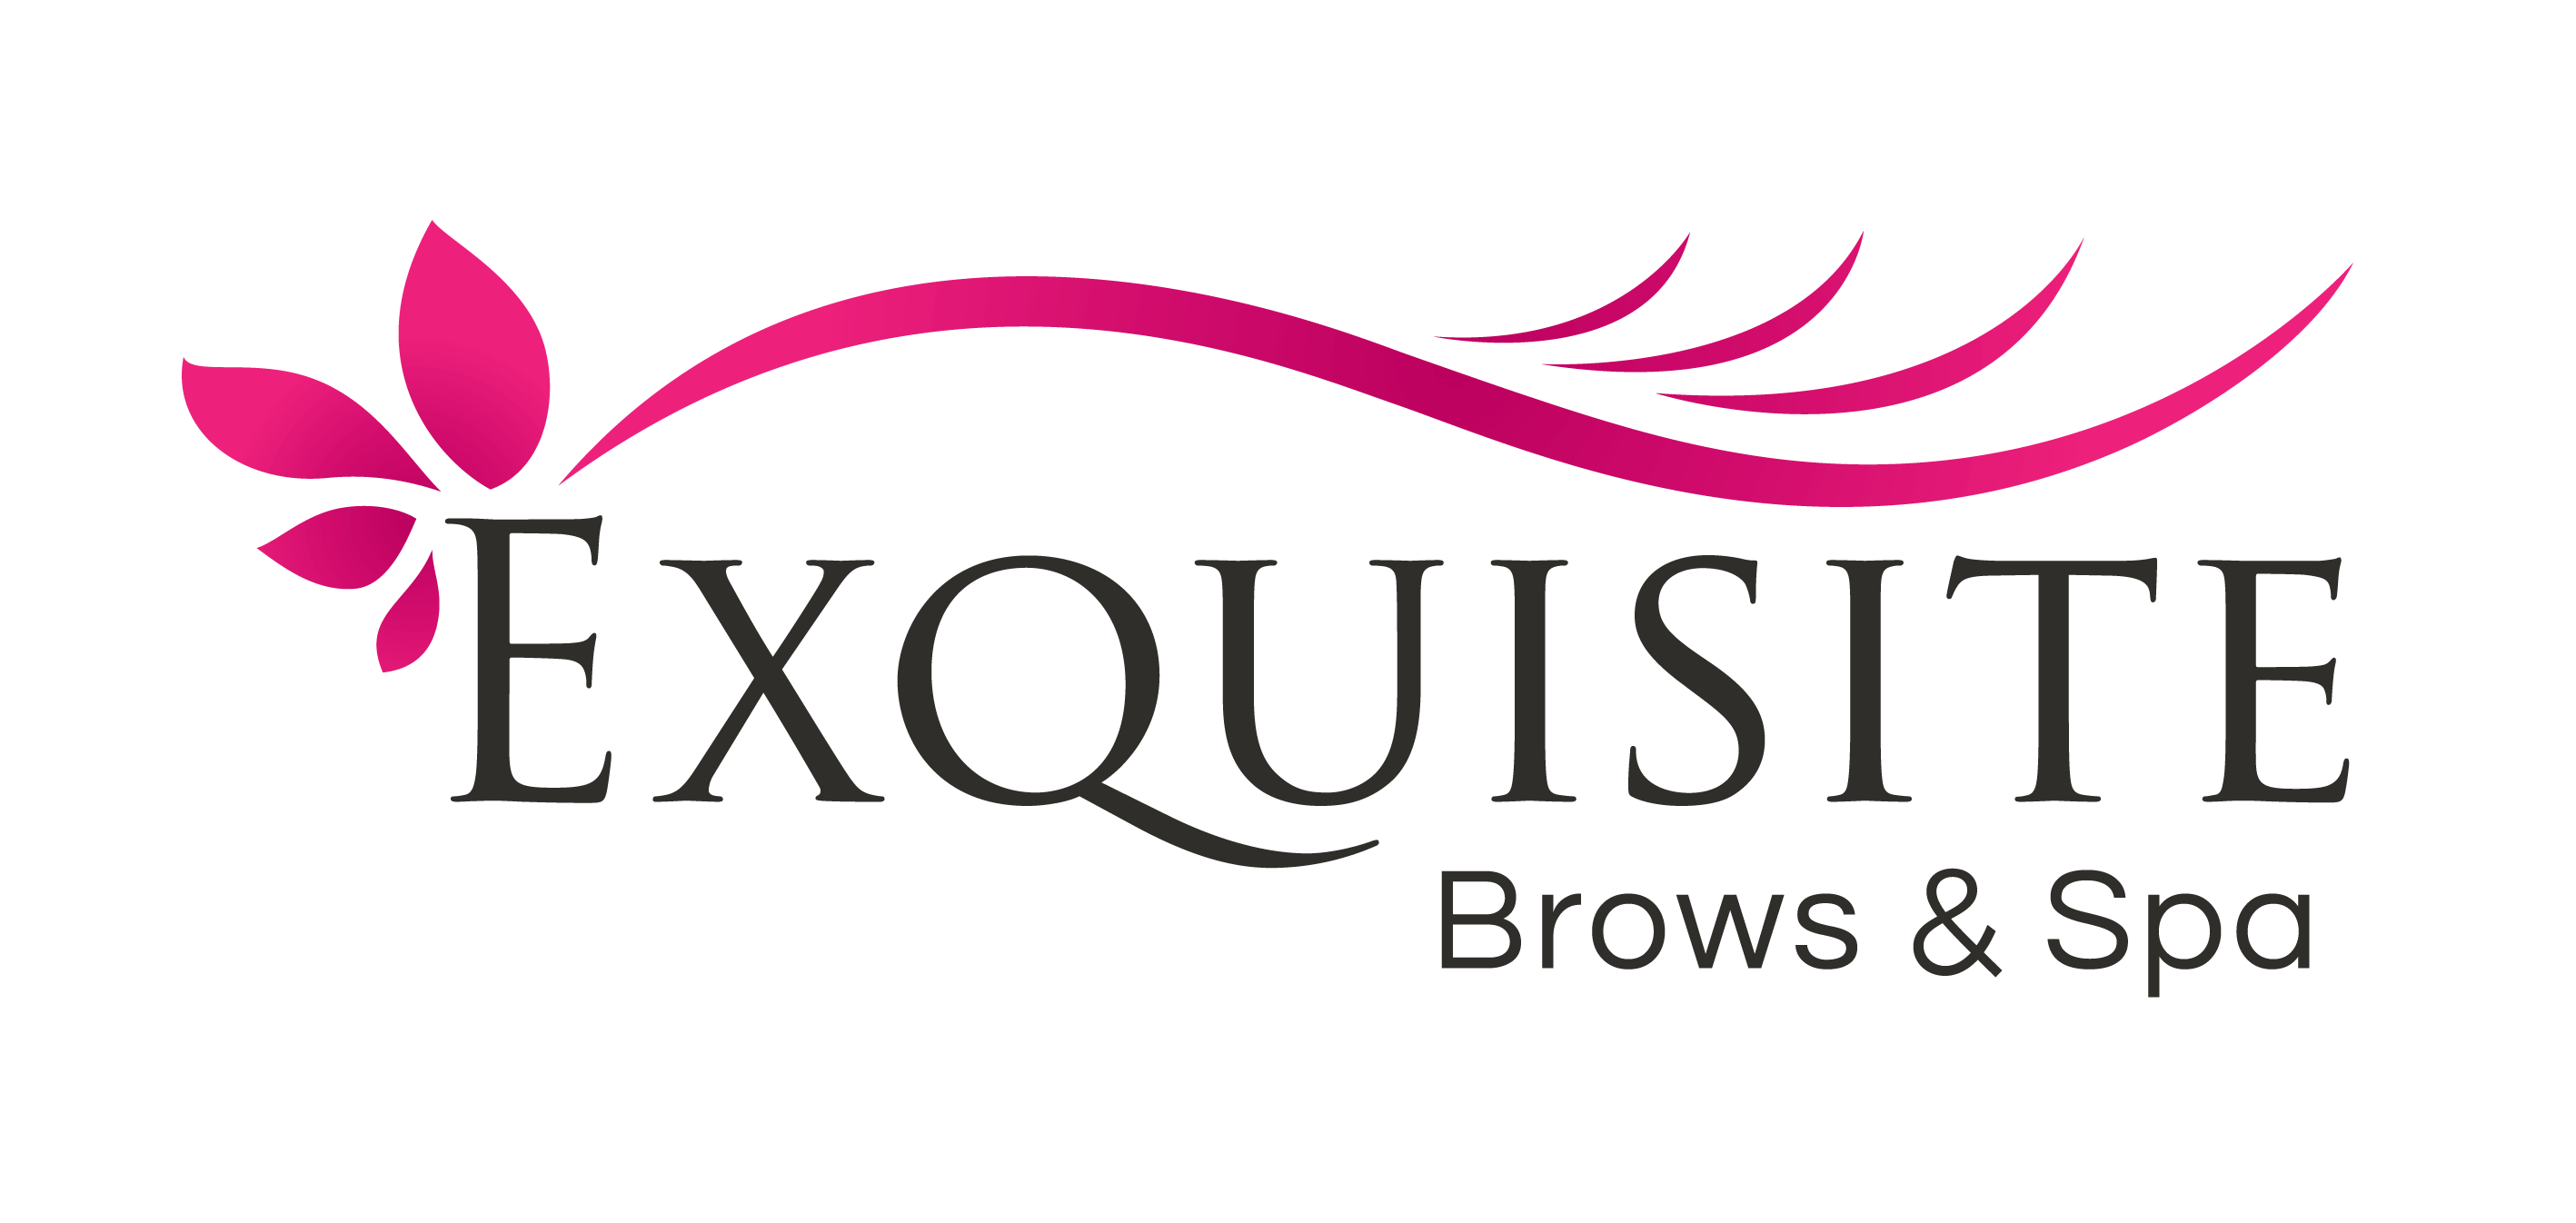 Eyebrows logo png. Exquisite brows spa eyebrow